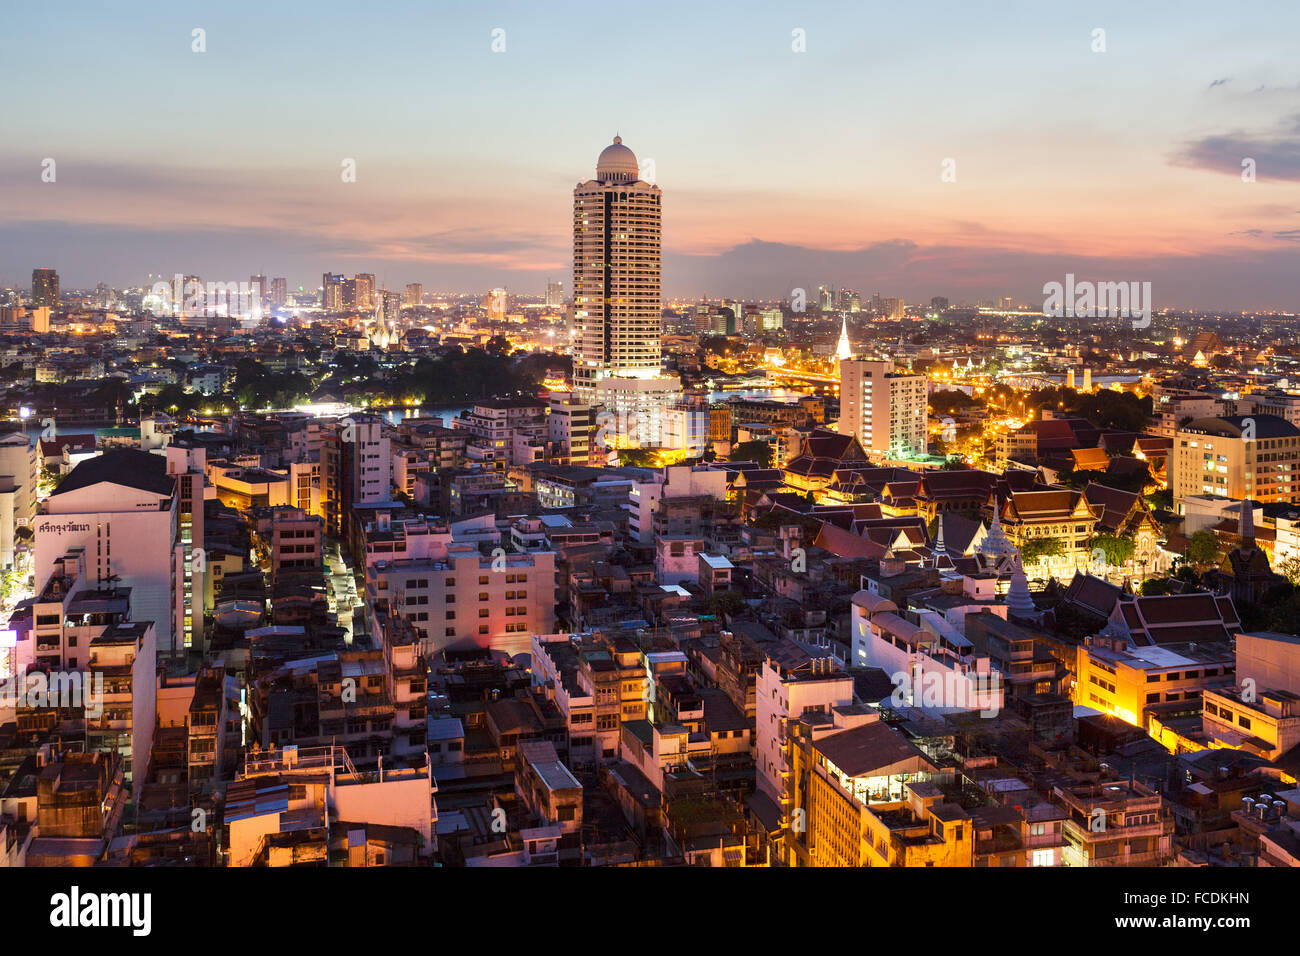 City view, River Park Condominium, tower at Menam Chao Phraya, dusk, panoramic view from Grand China Hotel, Chinatown, - Stock Image